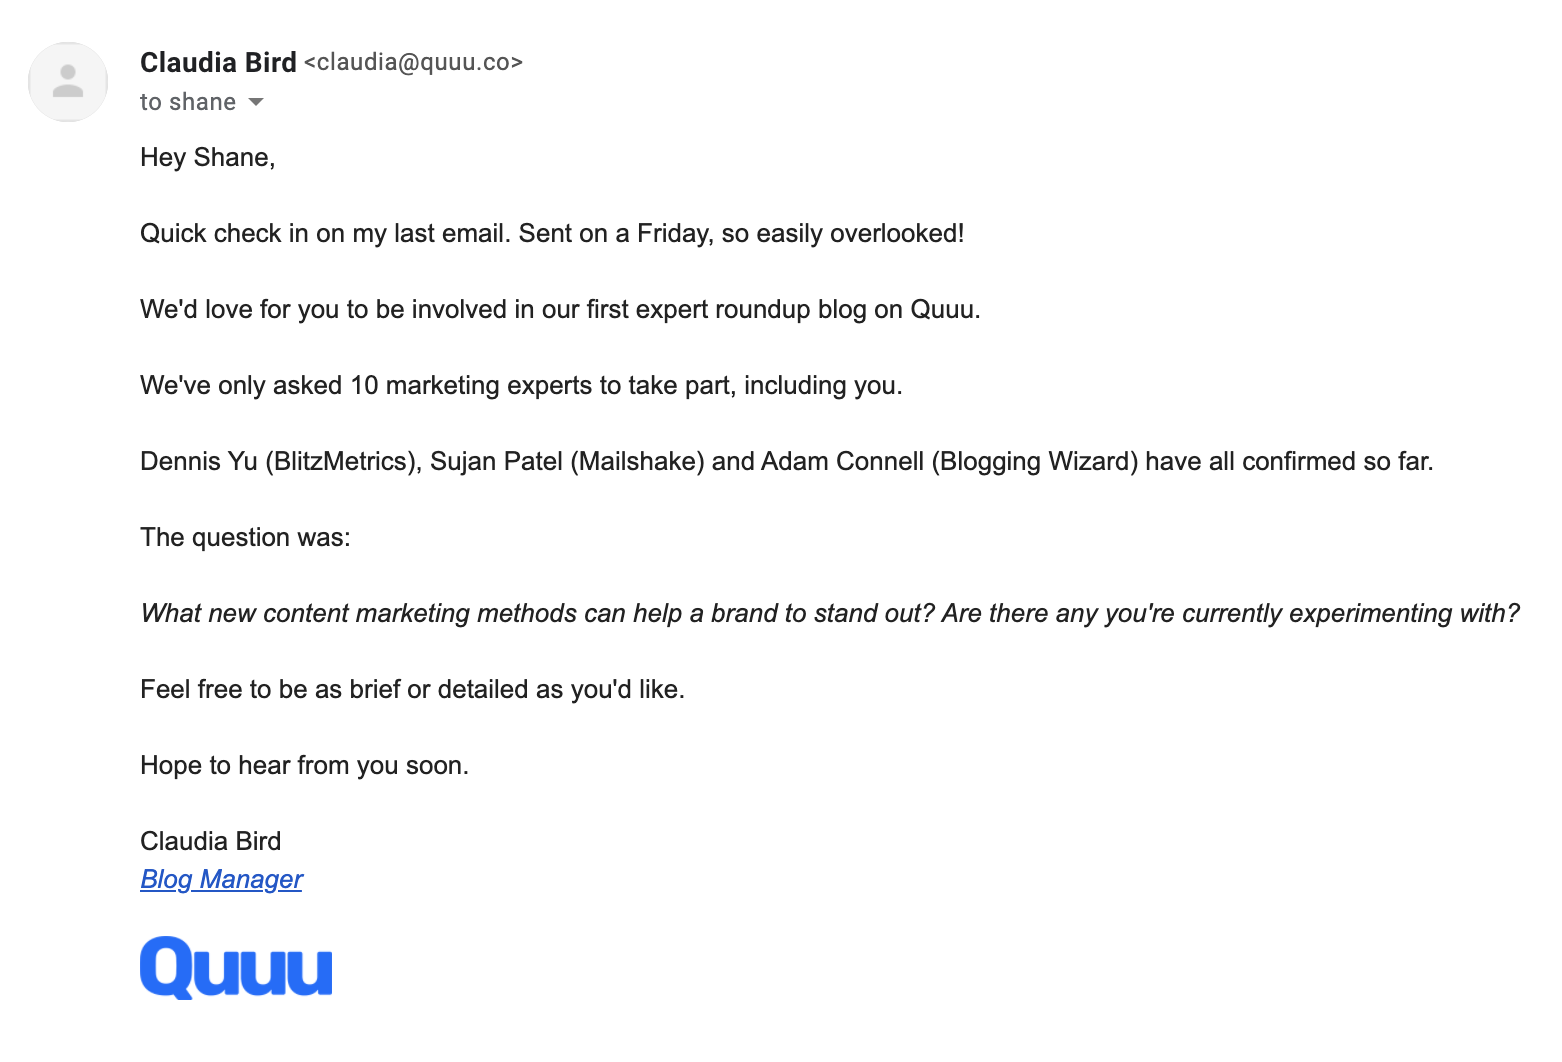 An email saying:Hey Shane,Quick check in on my last email. Sent on a Friday, so easily overlooked!We'd love for you to be involved in our first expert roundup blog on Quuu.We've only asked 10 marketing experts to take part, including you.Dennis Yu (BlitzMetrics), Sujan Patel (Mailshake) and Adam Connell (Blogging Wizard) have all confirmed so far.The question was:What new content marketing methods can help a brand to stand out? Are there any you're currently experimenting with?Feel free to be as brief or detailed as you'd like.Hope to hear from you soon.